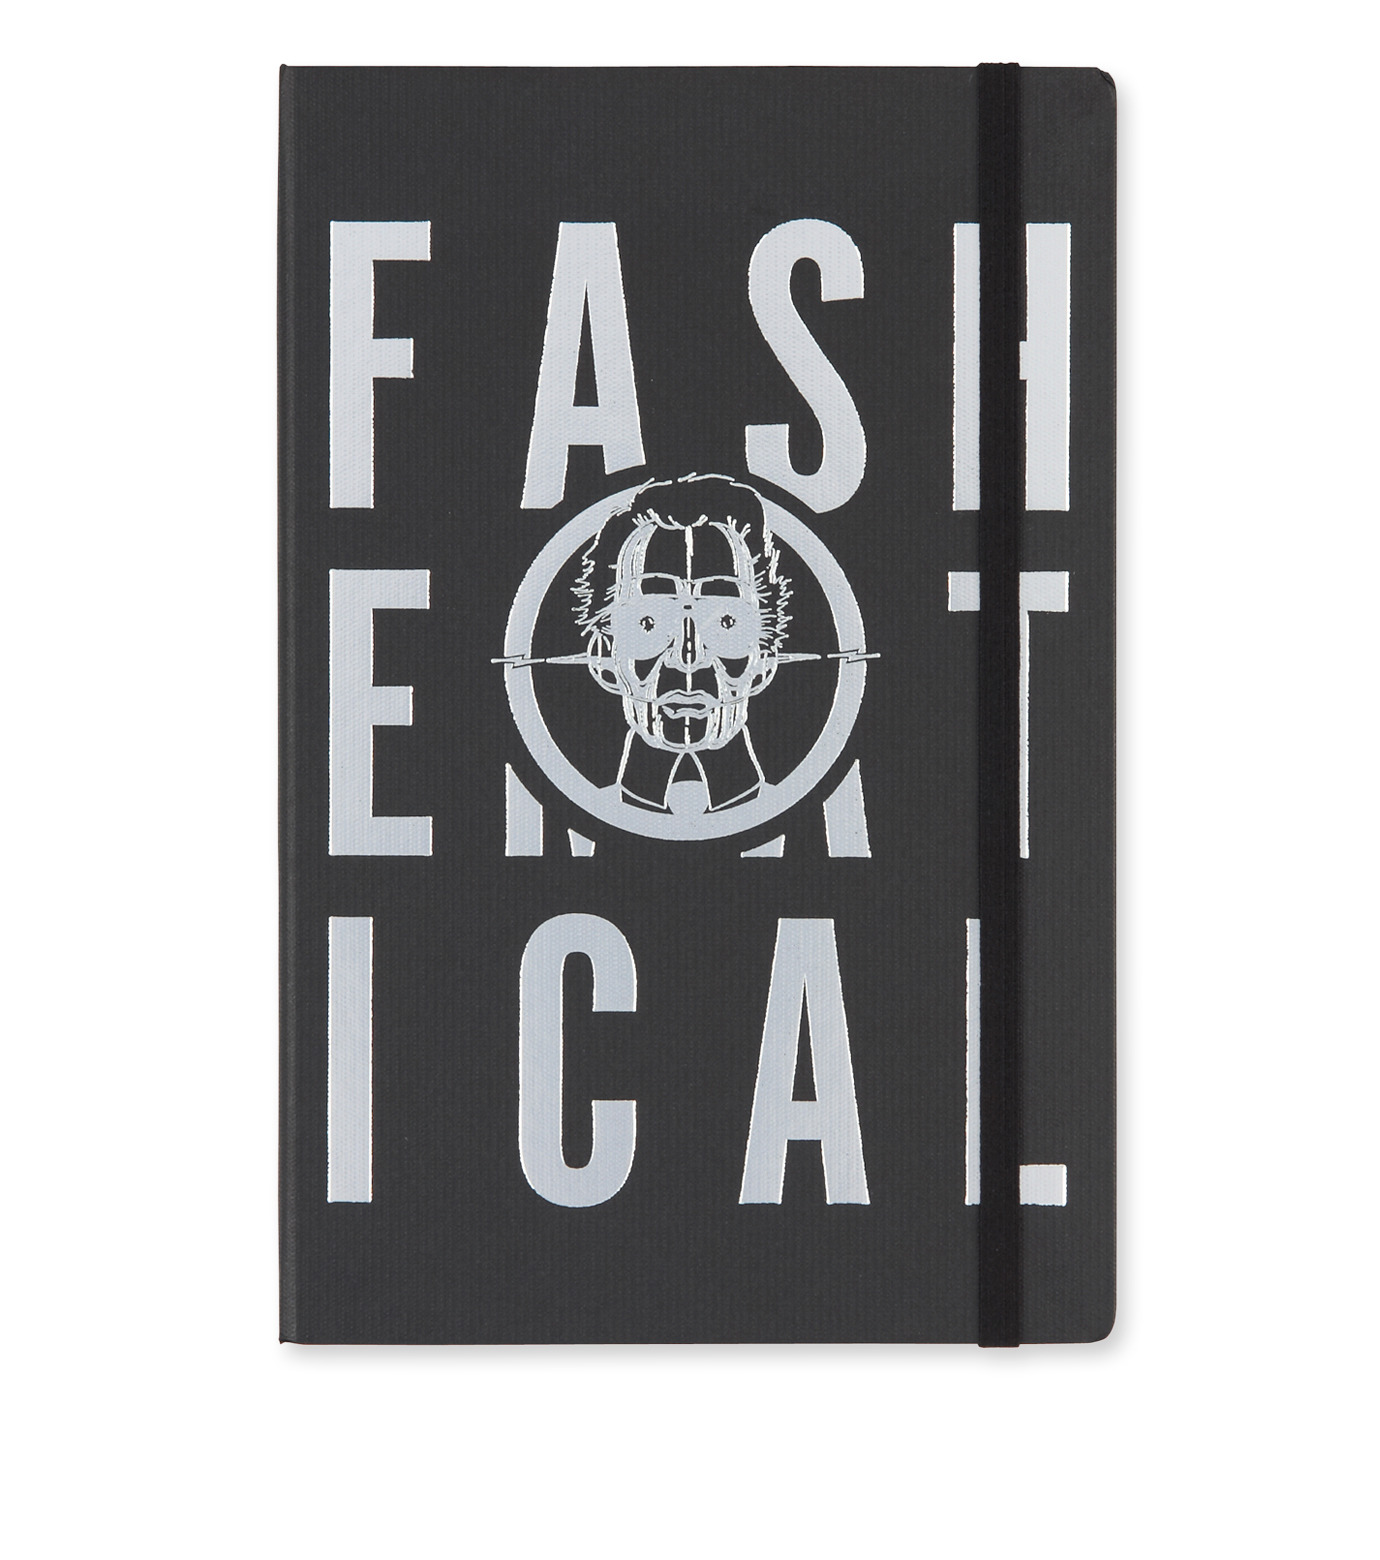 Fashematical(ファシェマティカル)のNote book-NONE(OTHER-GOODS/OTHER-GOODS)-Note-Karl 拡大詳細画像1